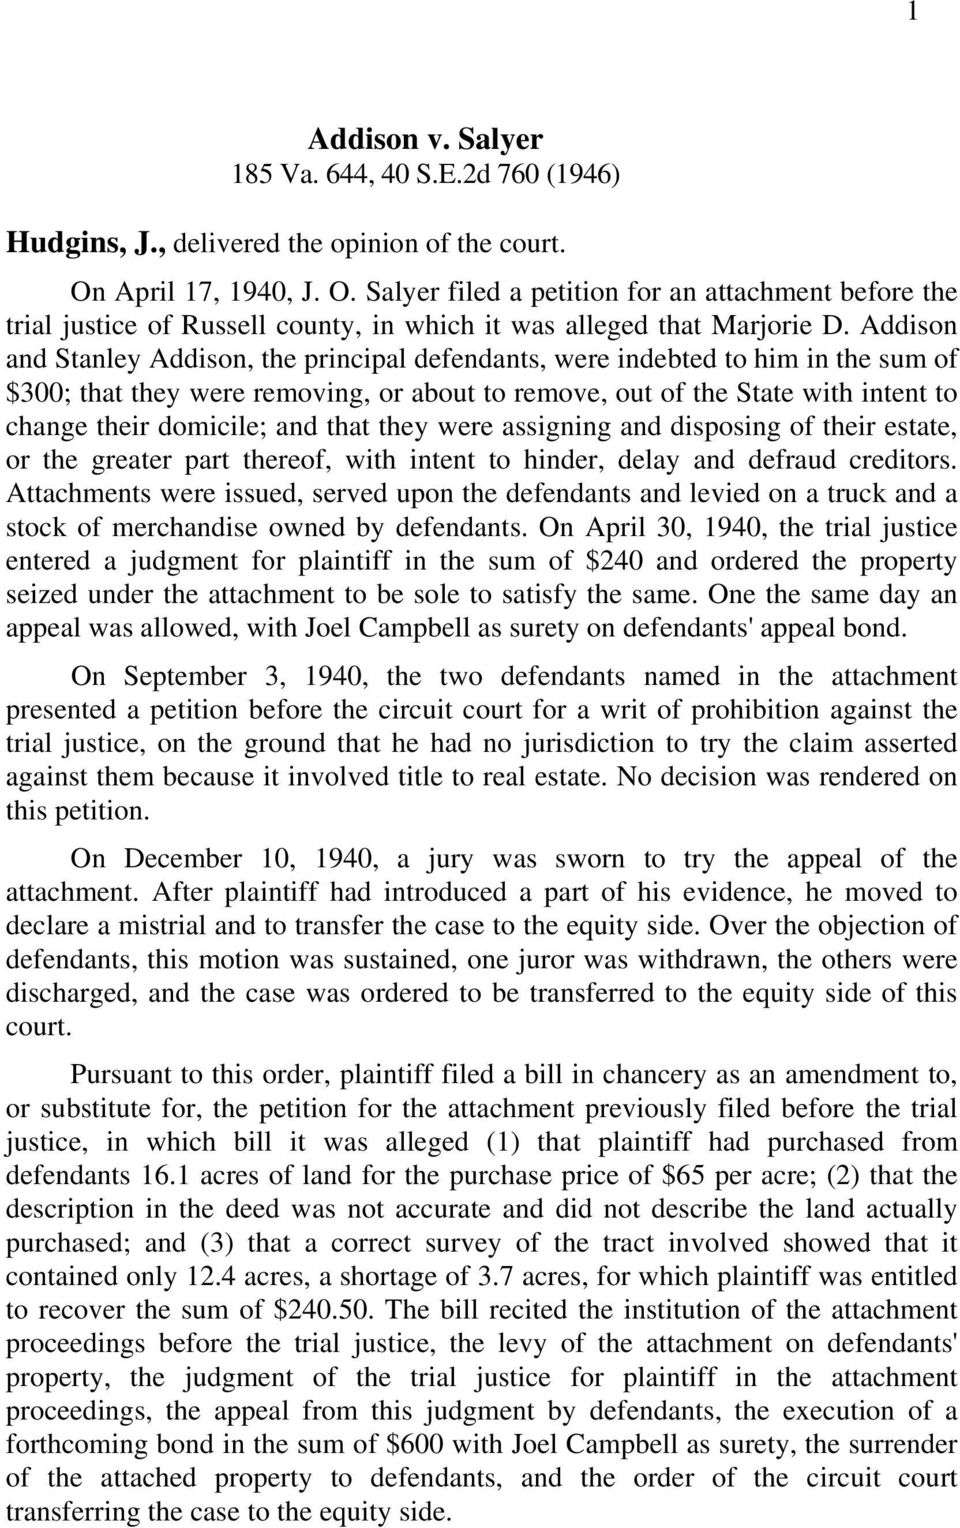 Addison and Stanley Addison, the principal defendants, were indebted to him in the sum of $300; that they were removing, or about to remove, out of the State with intent to change their domicile; and